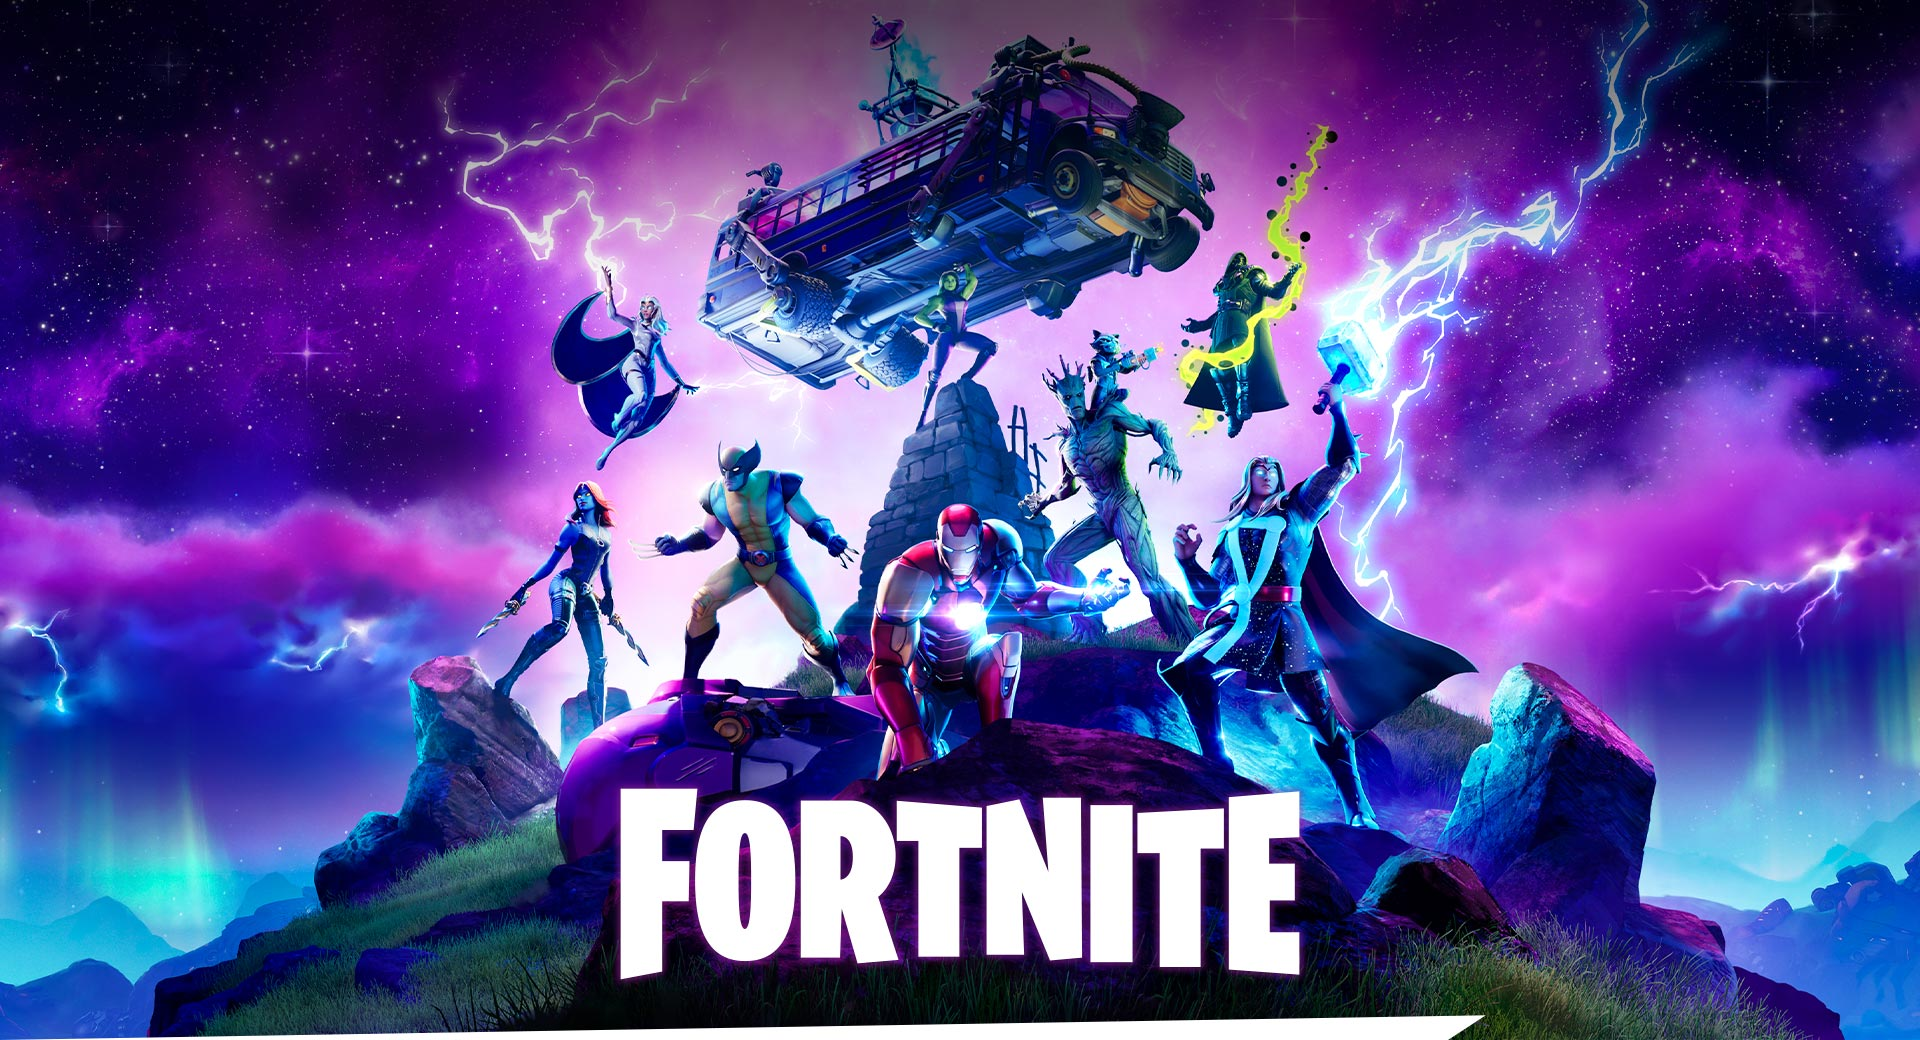 Fortnite, Marvel characters are surrounded by purple lightning as they prepare for battle on a mountaintop.